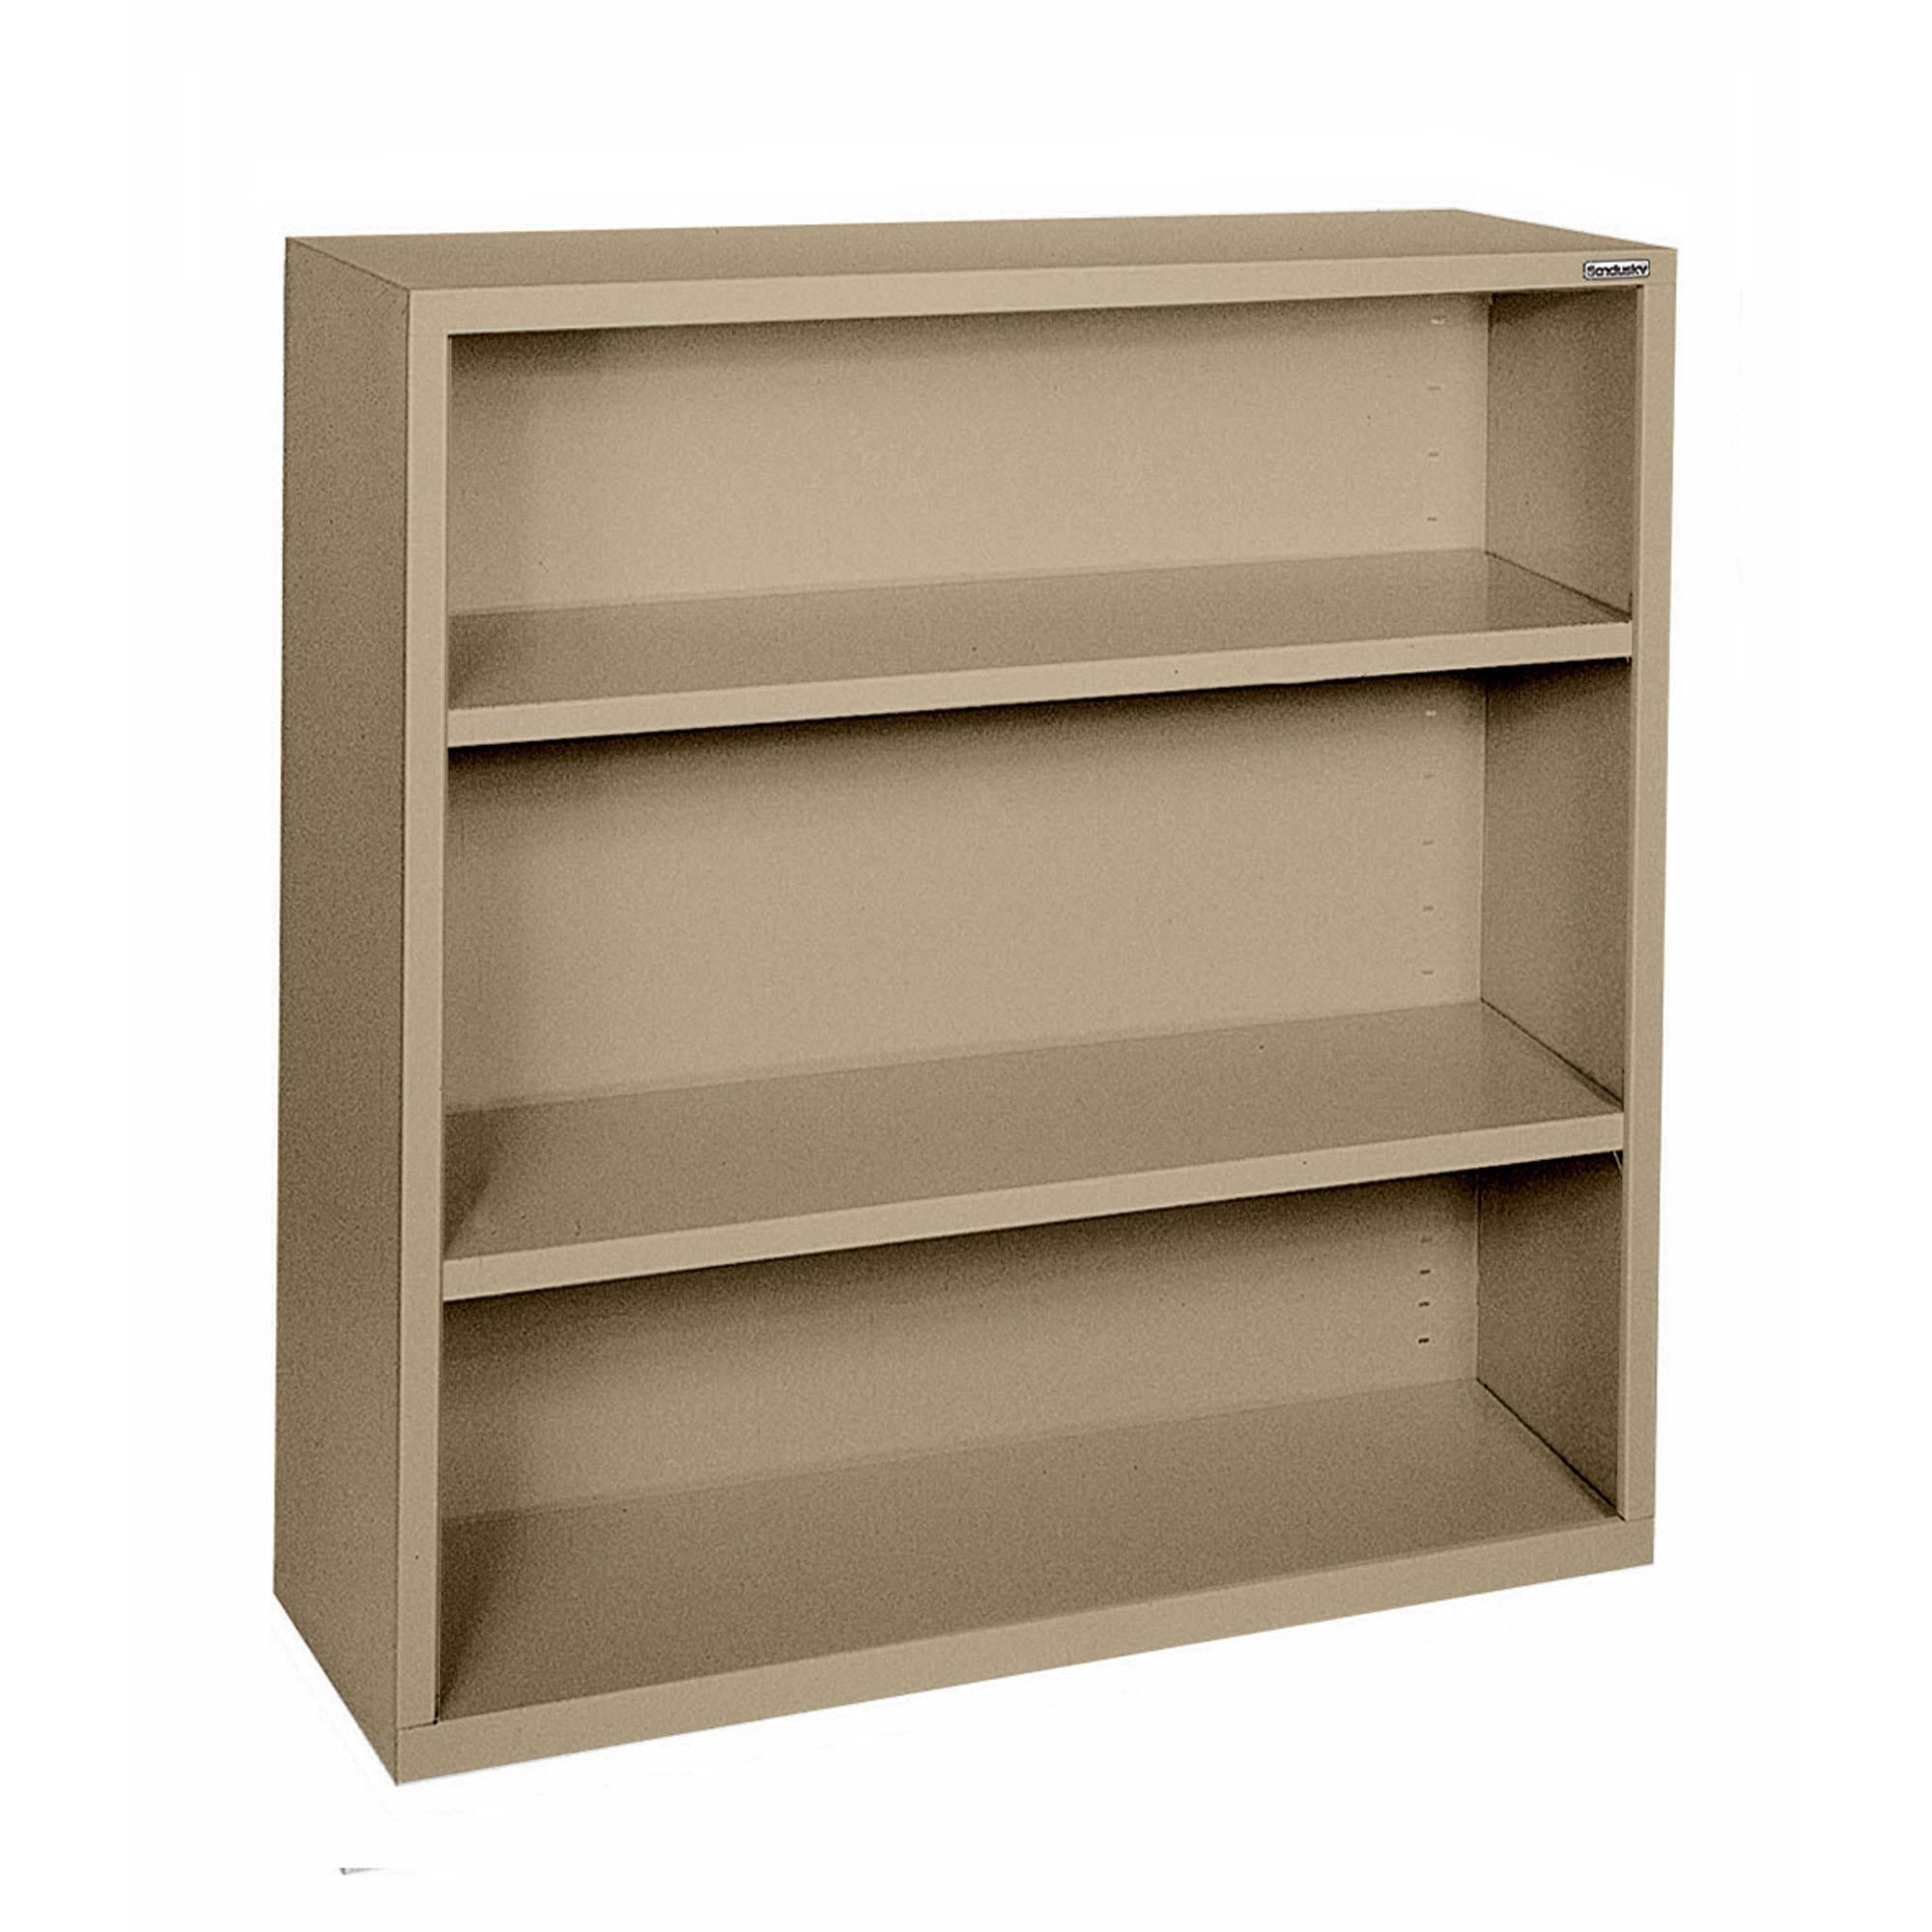 Elite Series Welded Steel Bookcase, 2 Shelves and Bottom Shelf, 34 x 12 x 42, Tropic Sand